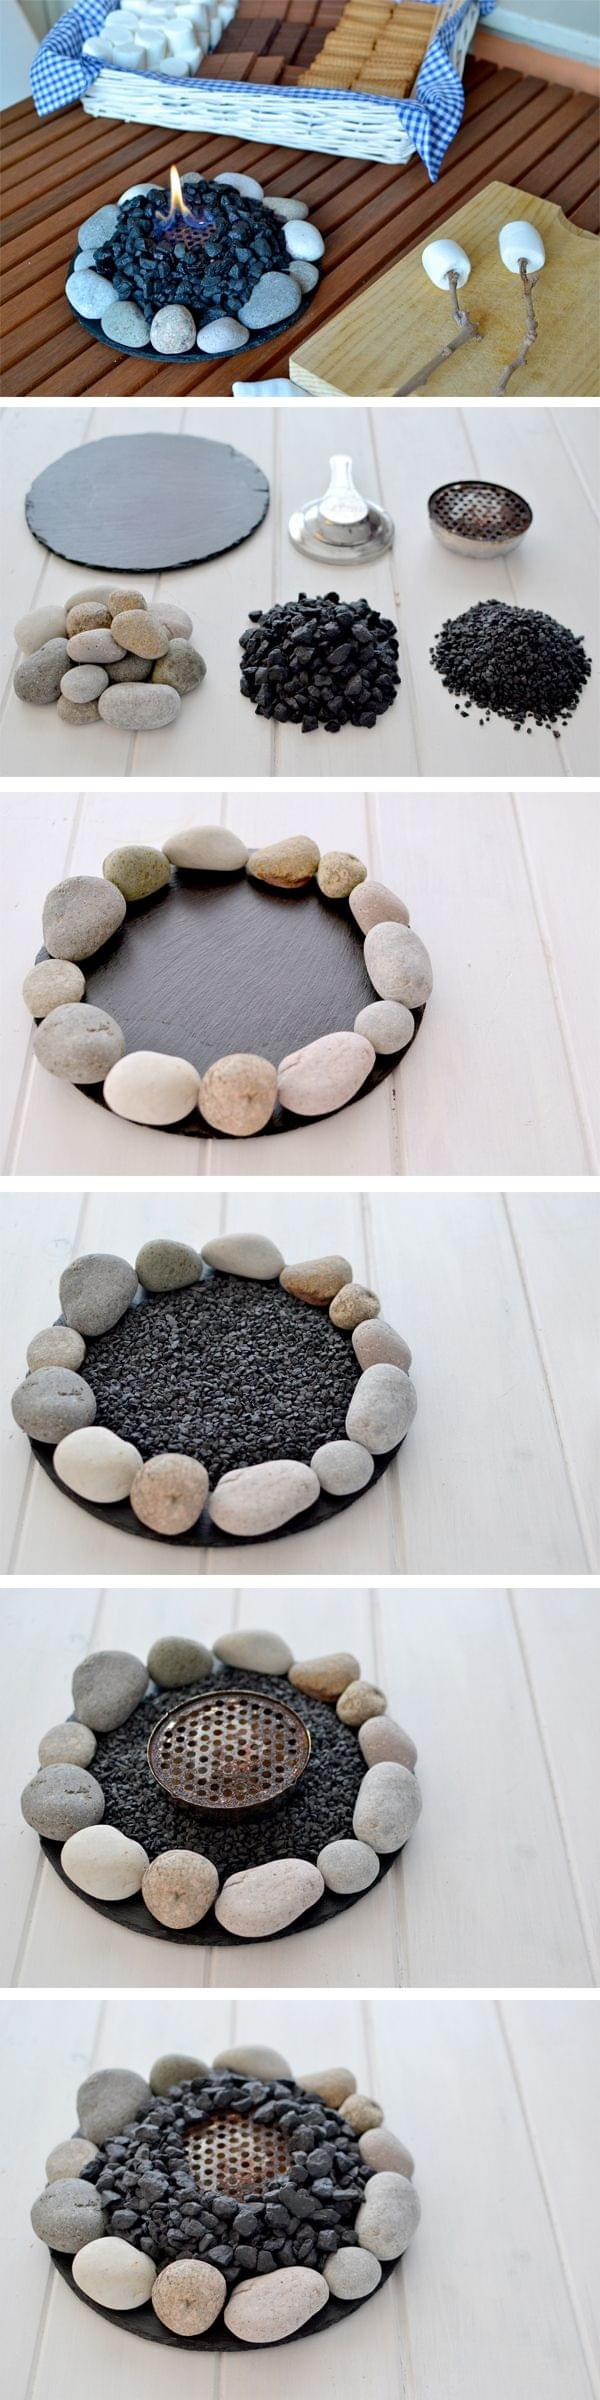 20 DIY Fire Pits For Your Backyard (part 2)